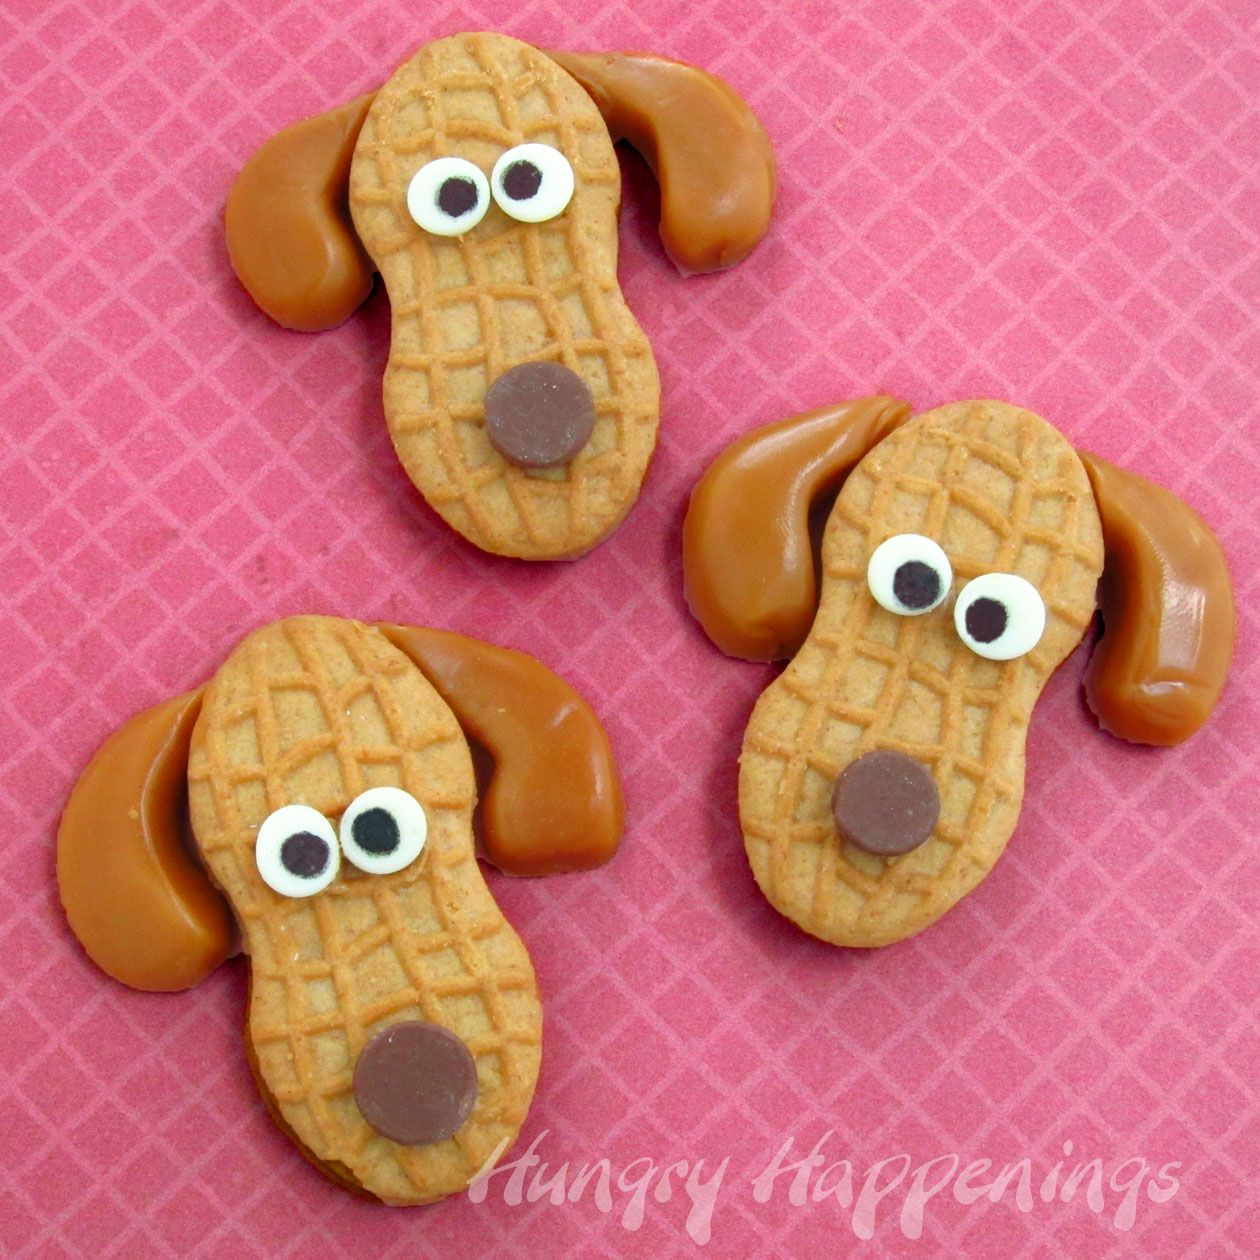 Peanut Butter Puppies using Nutter Butter Cookies: So cute!